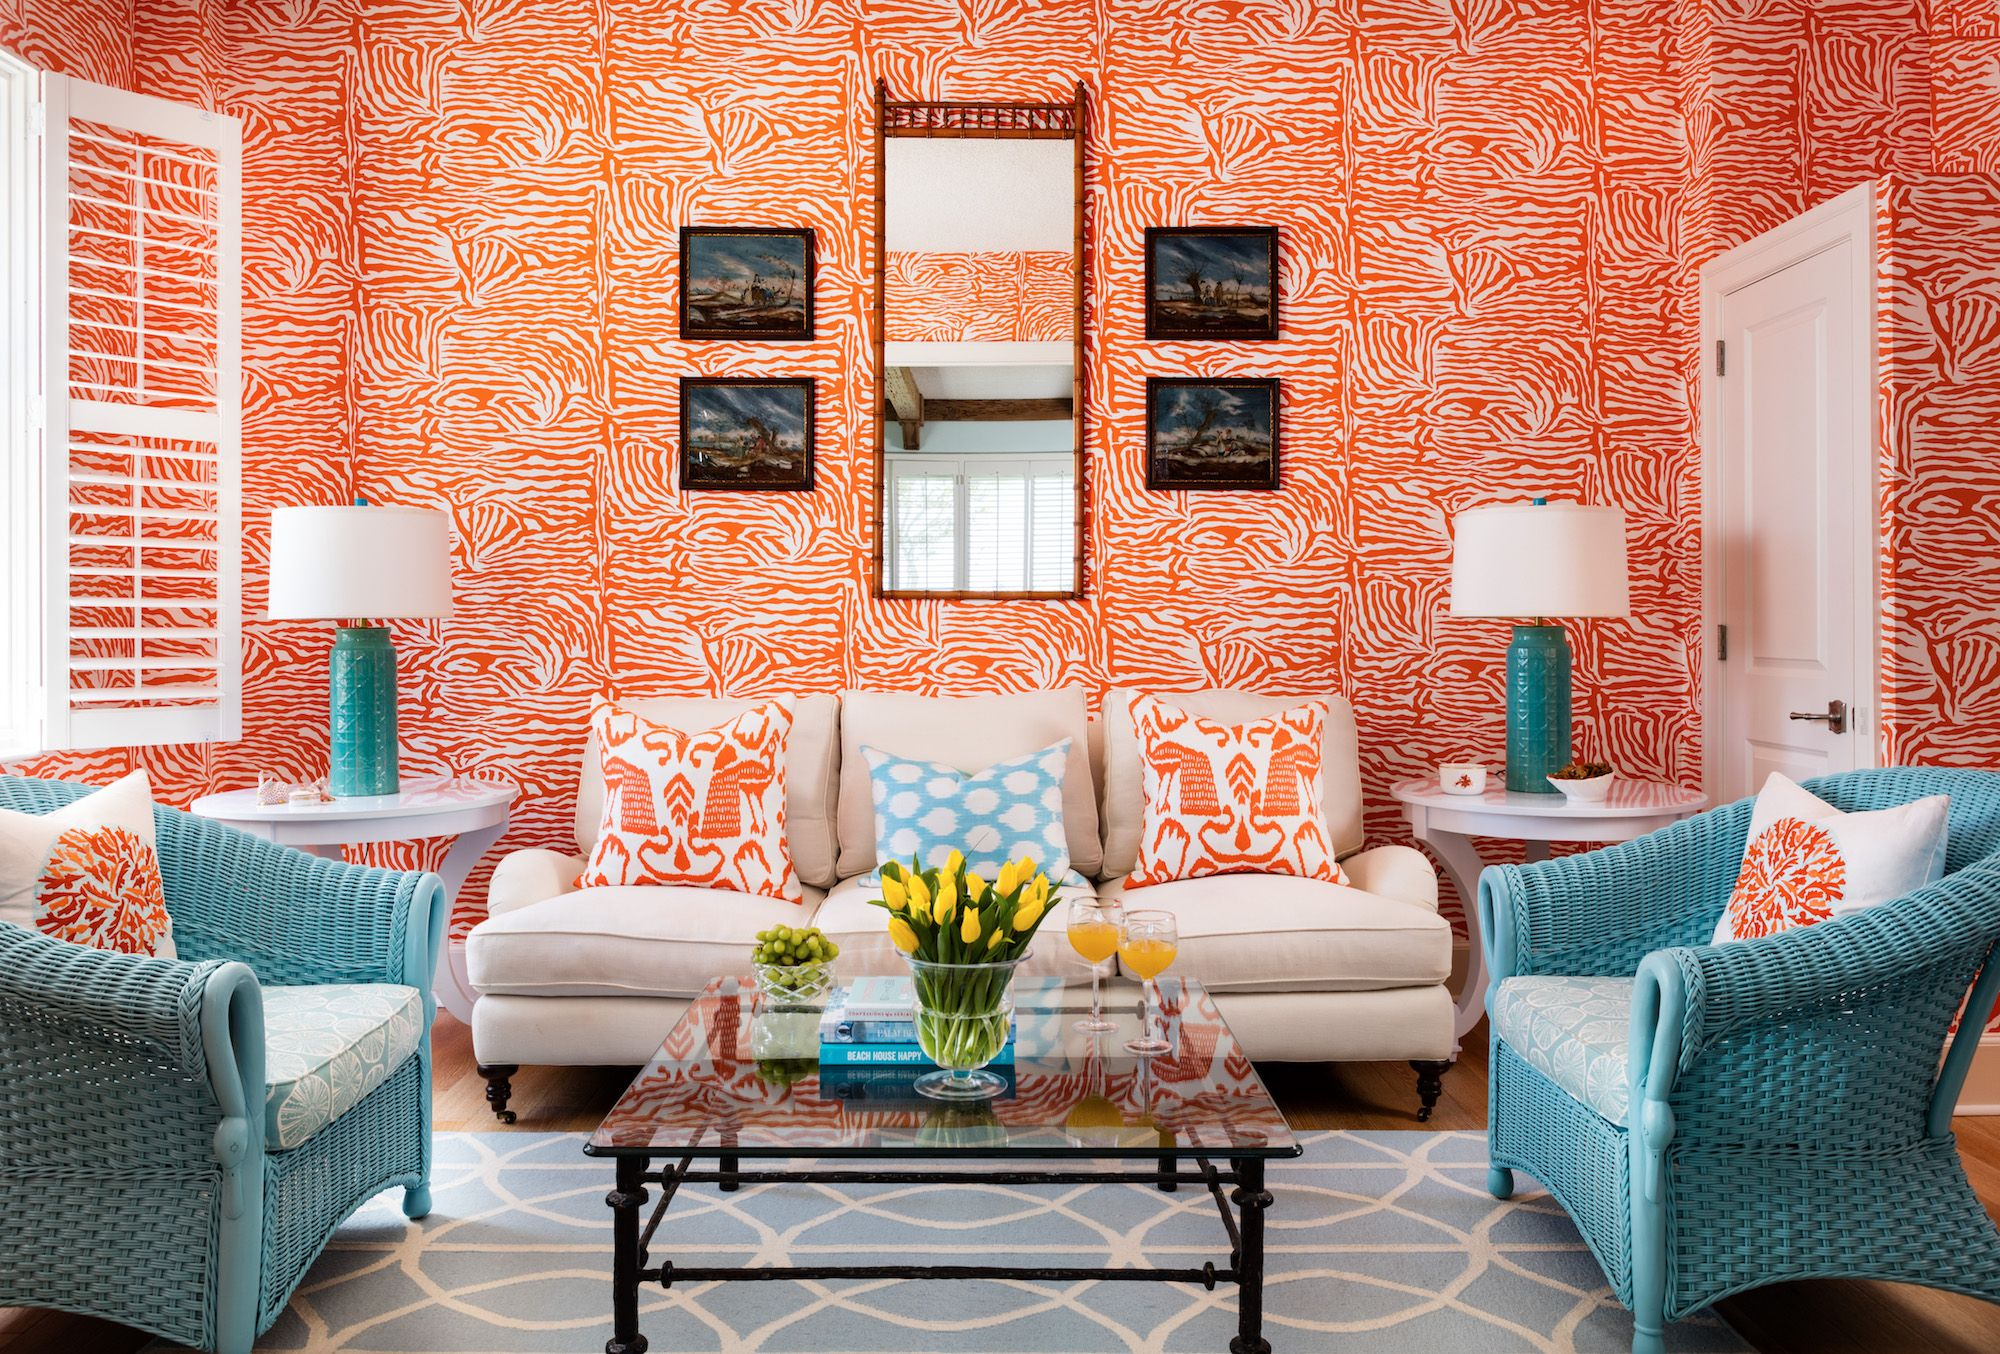 3 tips and ideas for wallpaper in the living room that you can use on your walls